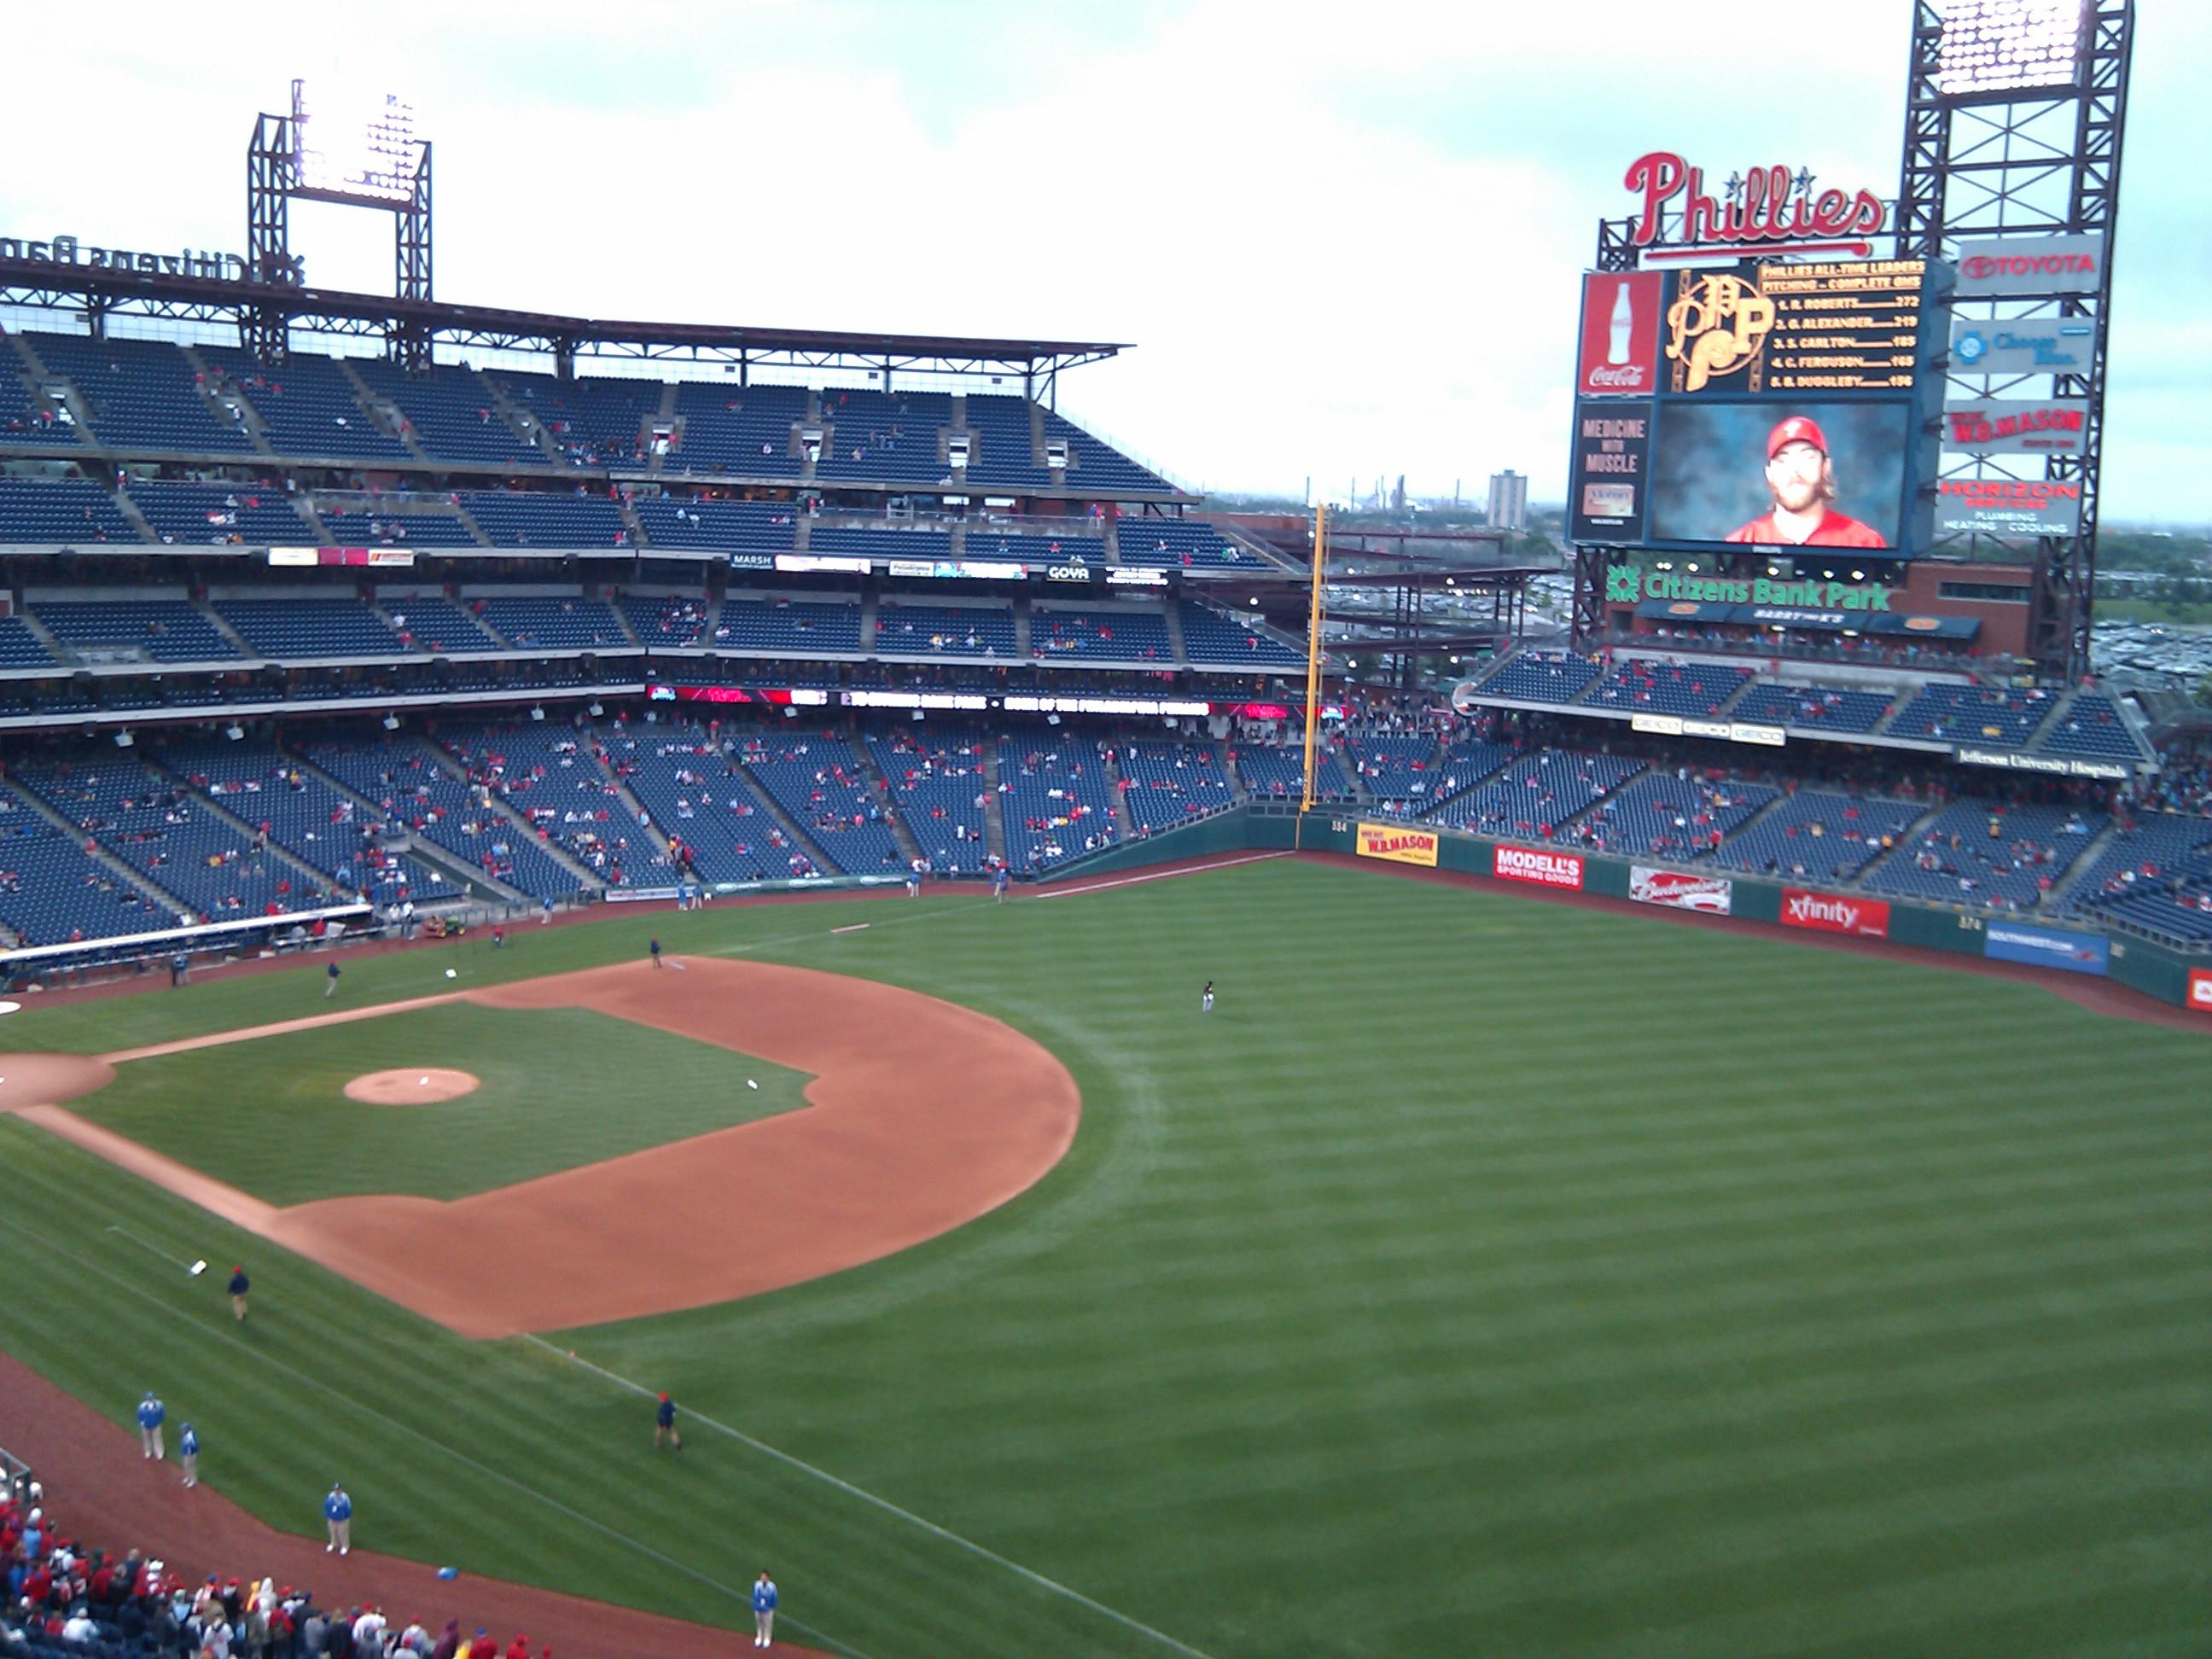 Citizens Bank Park Section 309 Row 11 Seat 14